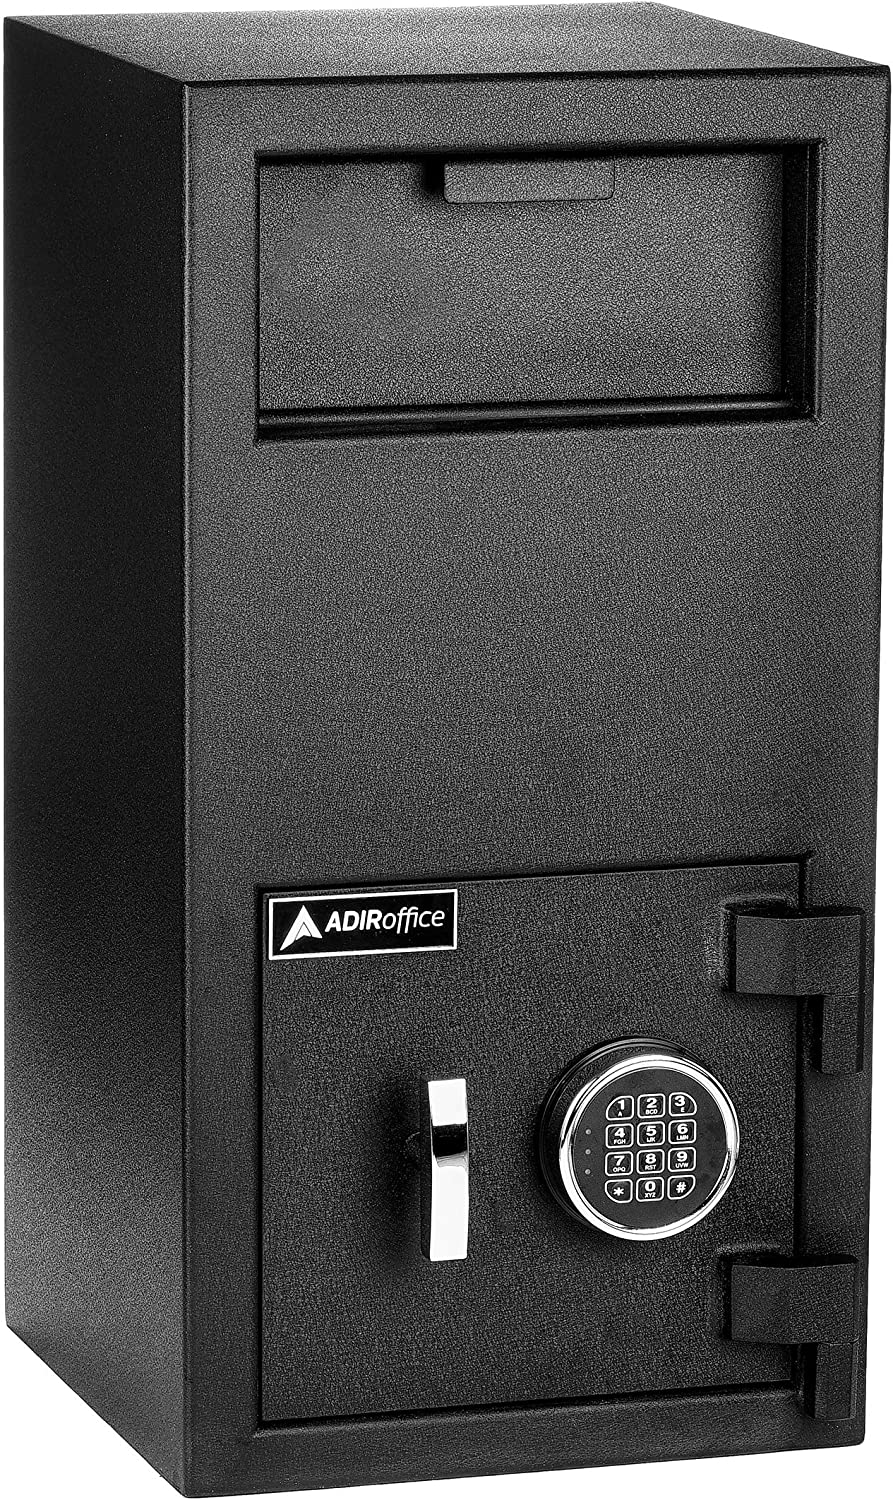 AdirOffice Keypad Lock Drop Box Safe - Industrial Strength Security Storage with Digital Lock - Safety for Home & Business Use (Large)